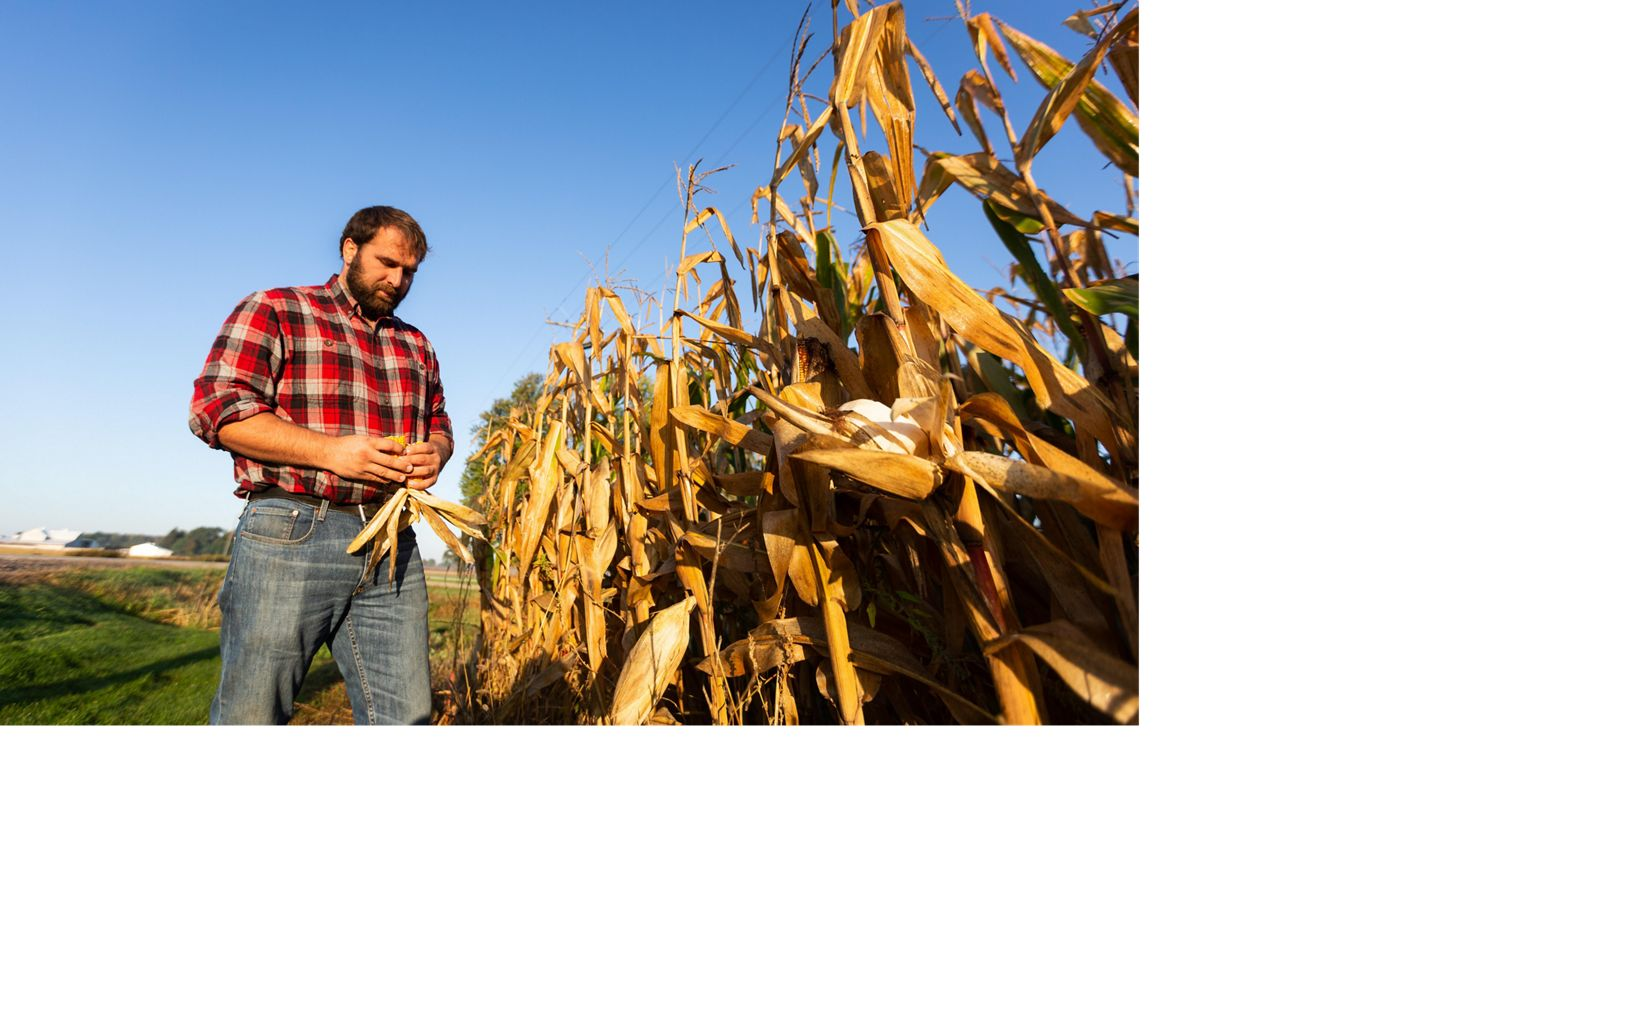 Mike looks at his corn crop on his farm in the Saginaw Bay Watershed in Michigan.